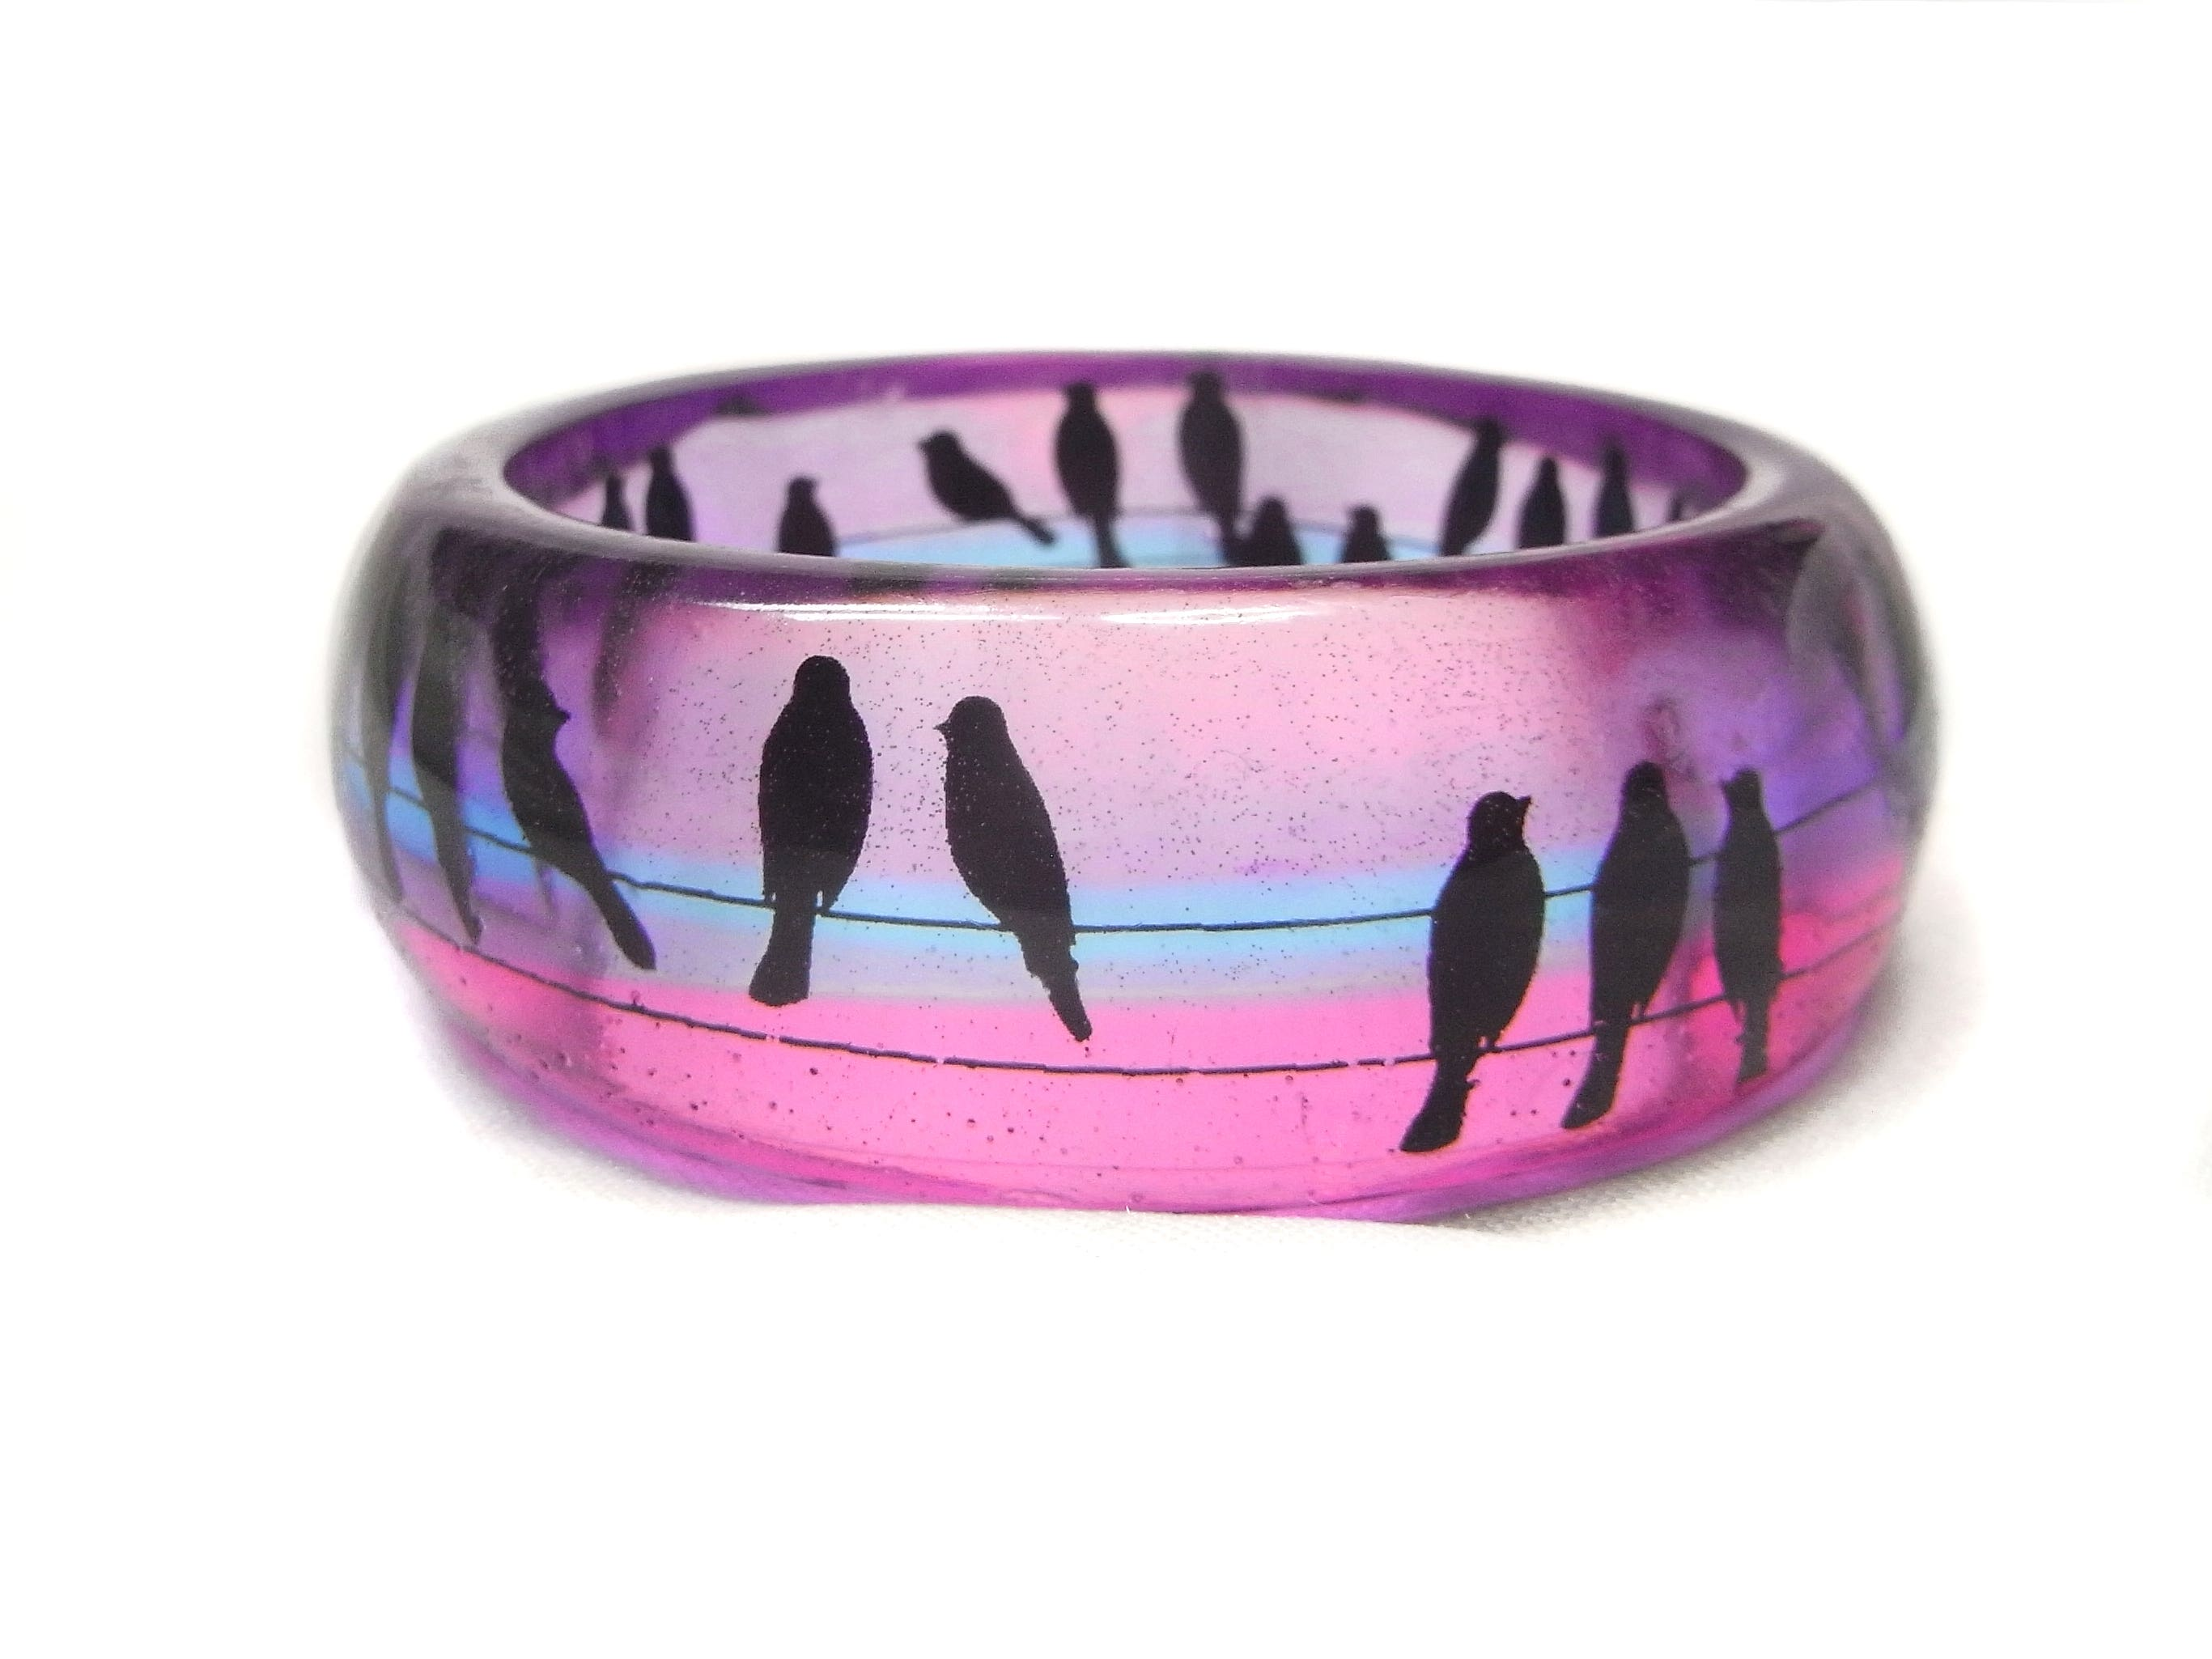 Turquoise feathers in clear resin bangle and orange pink and red feathers in clear resin bangle